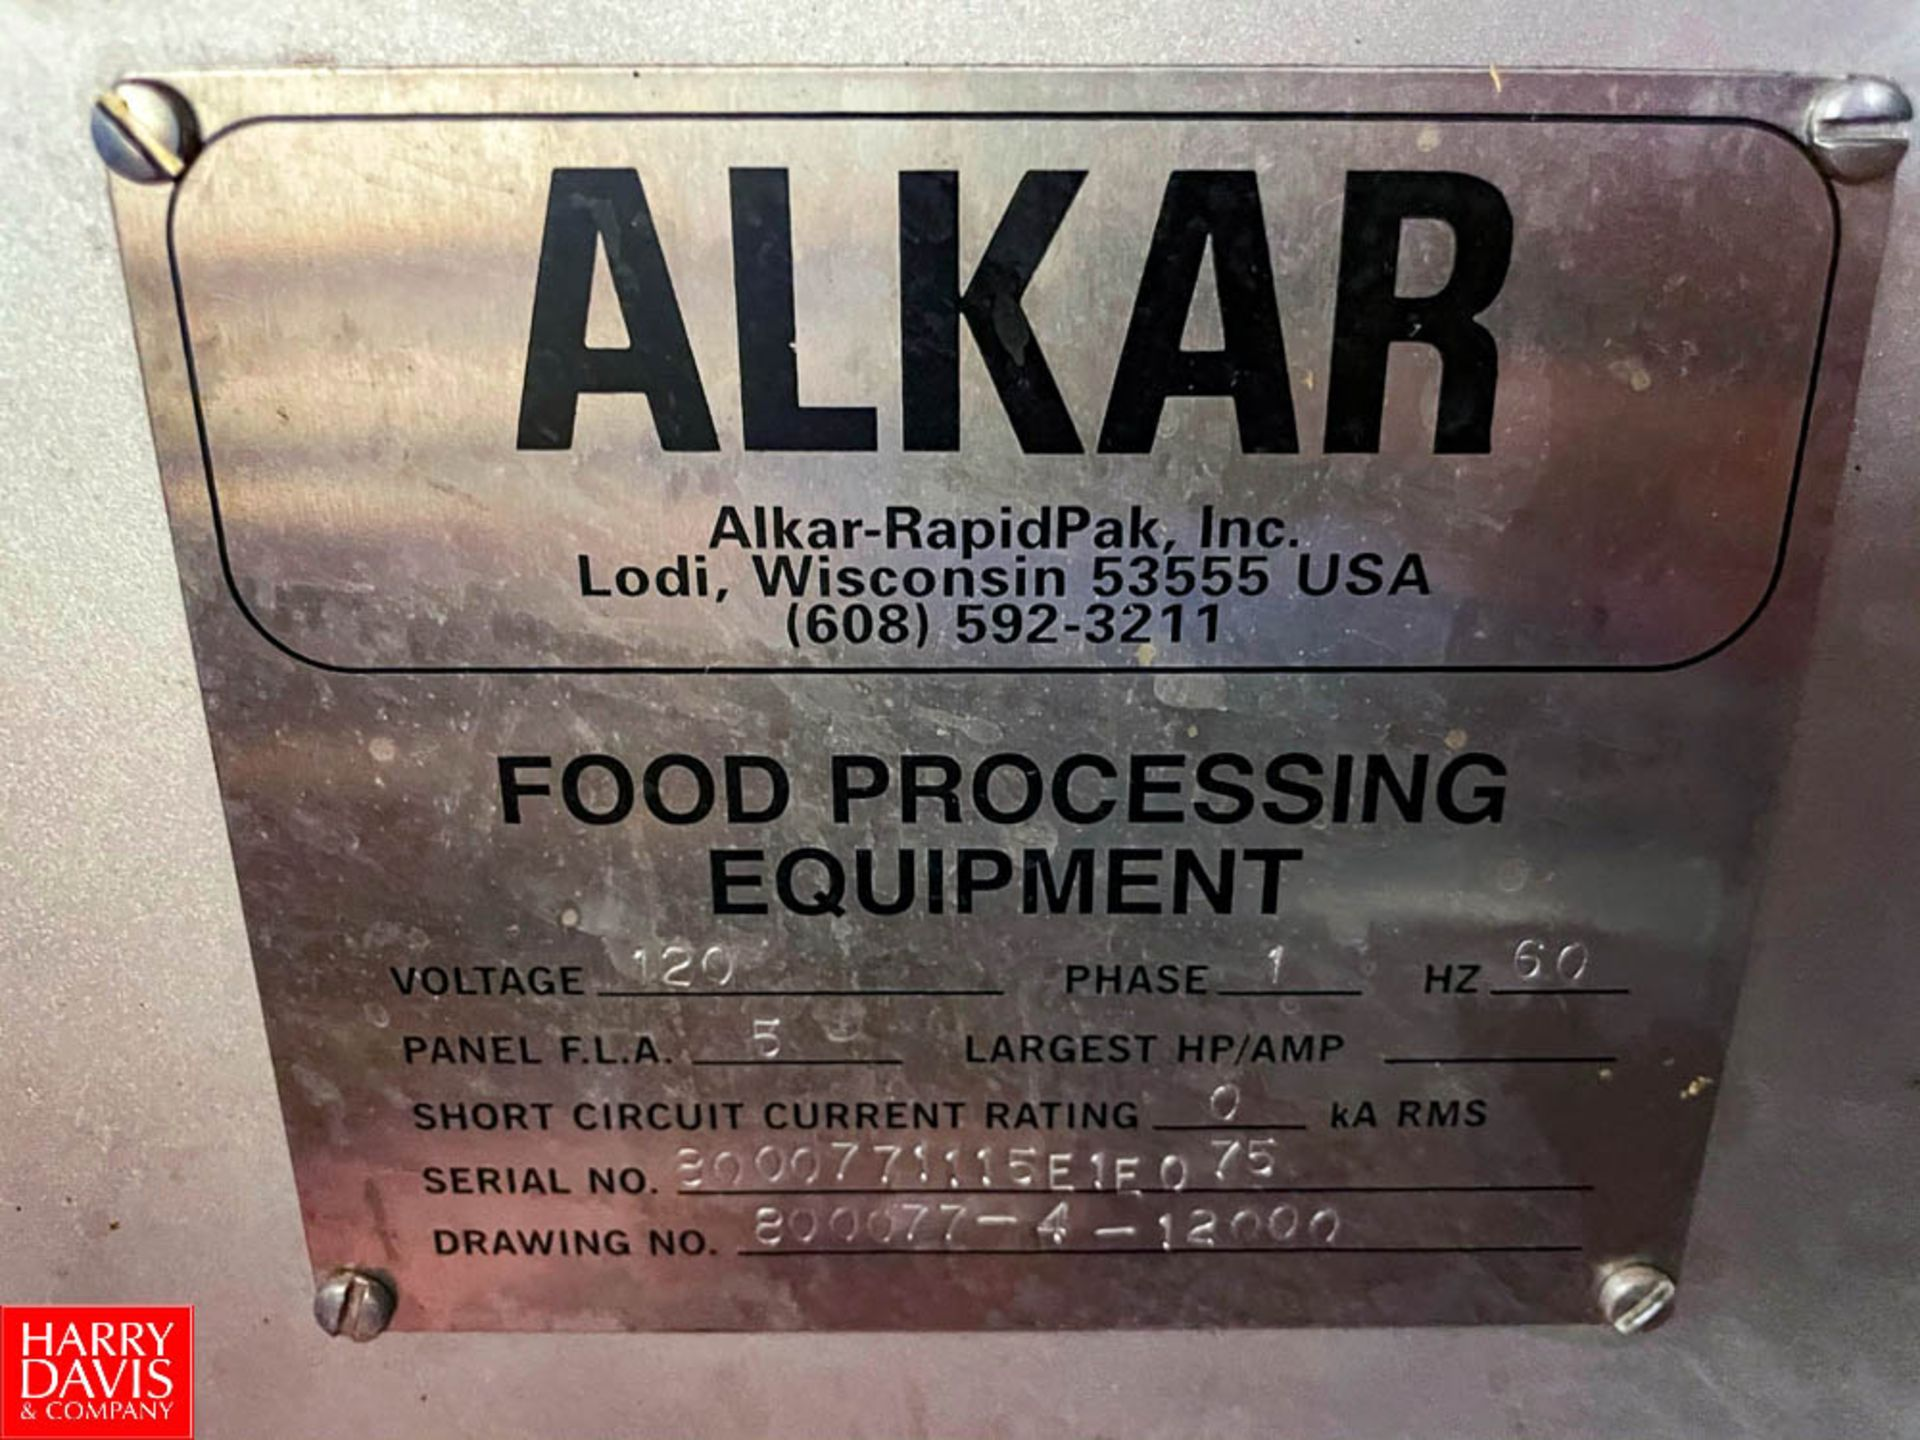 2015 Alkar Smoker with 120 Volts S/N: 8000771115E1F075 - Image 7 of 10